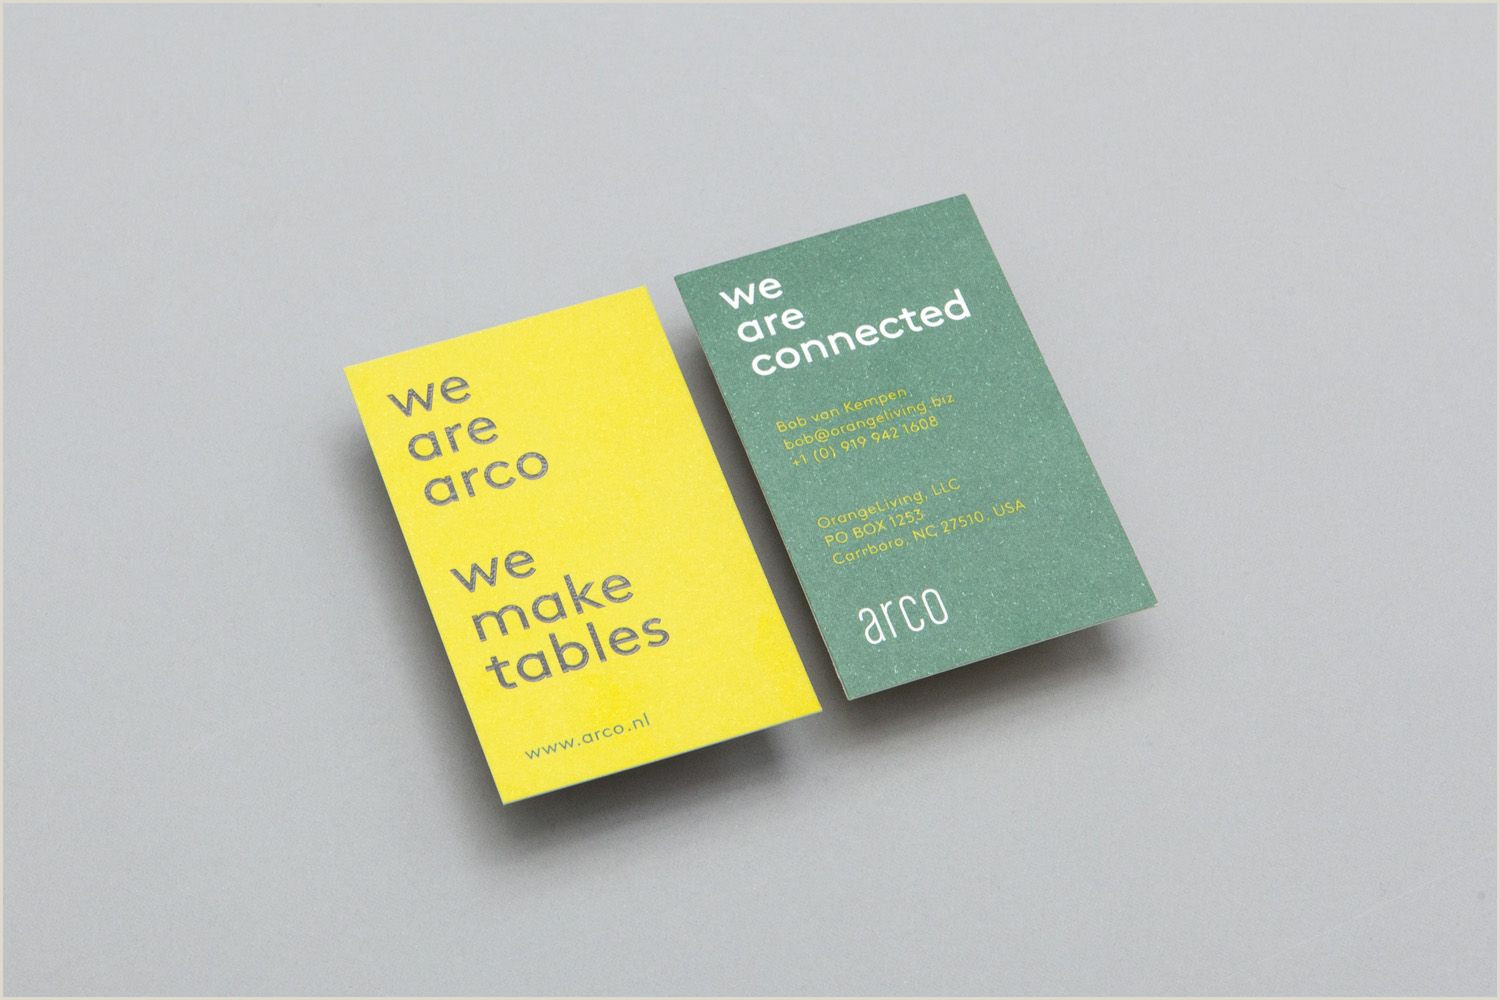 Best Business Cards With No Address The Best Business Card Designs No 11 — Bp&o